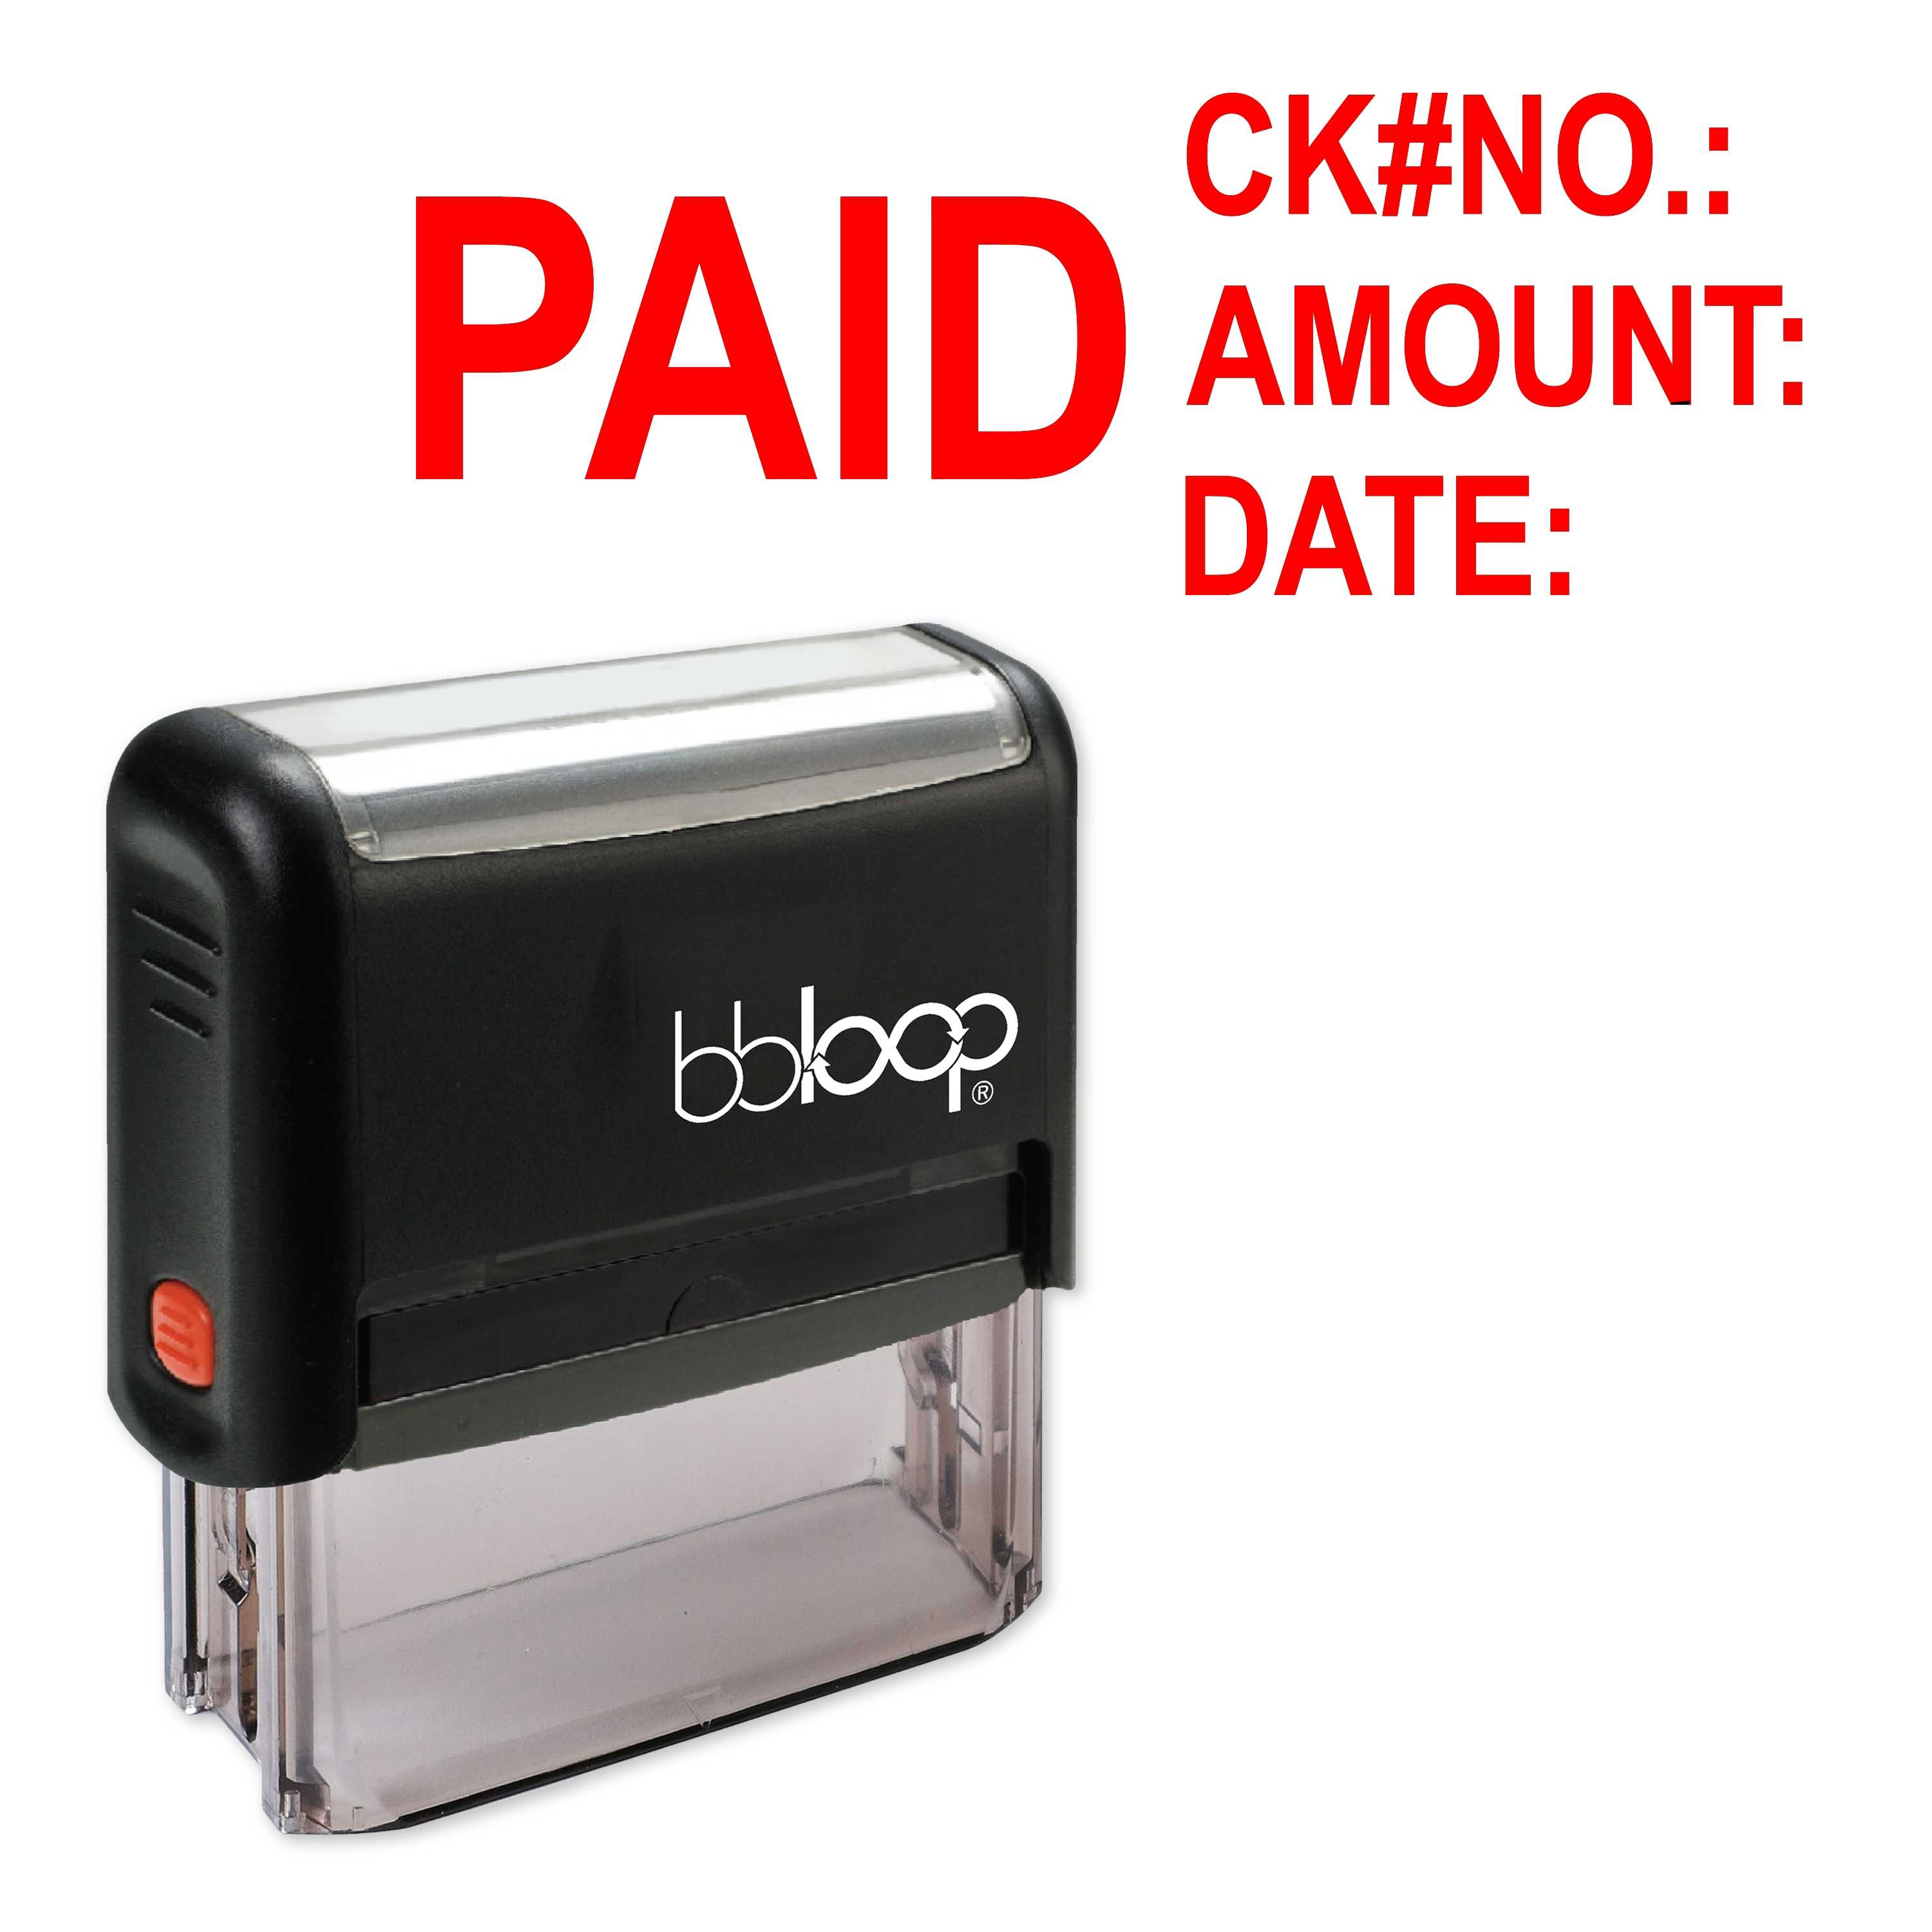 Bbloop Paid W Check Details Self Inking Rubber Stamp